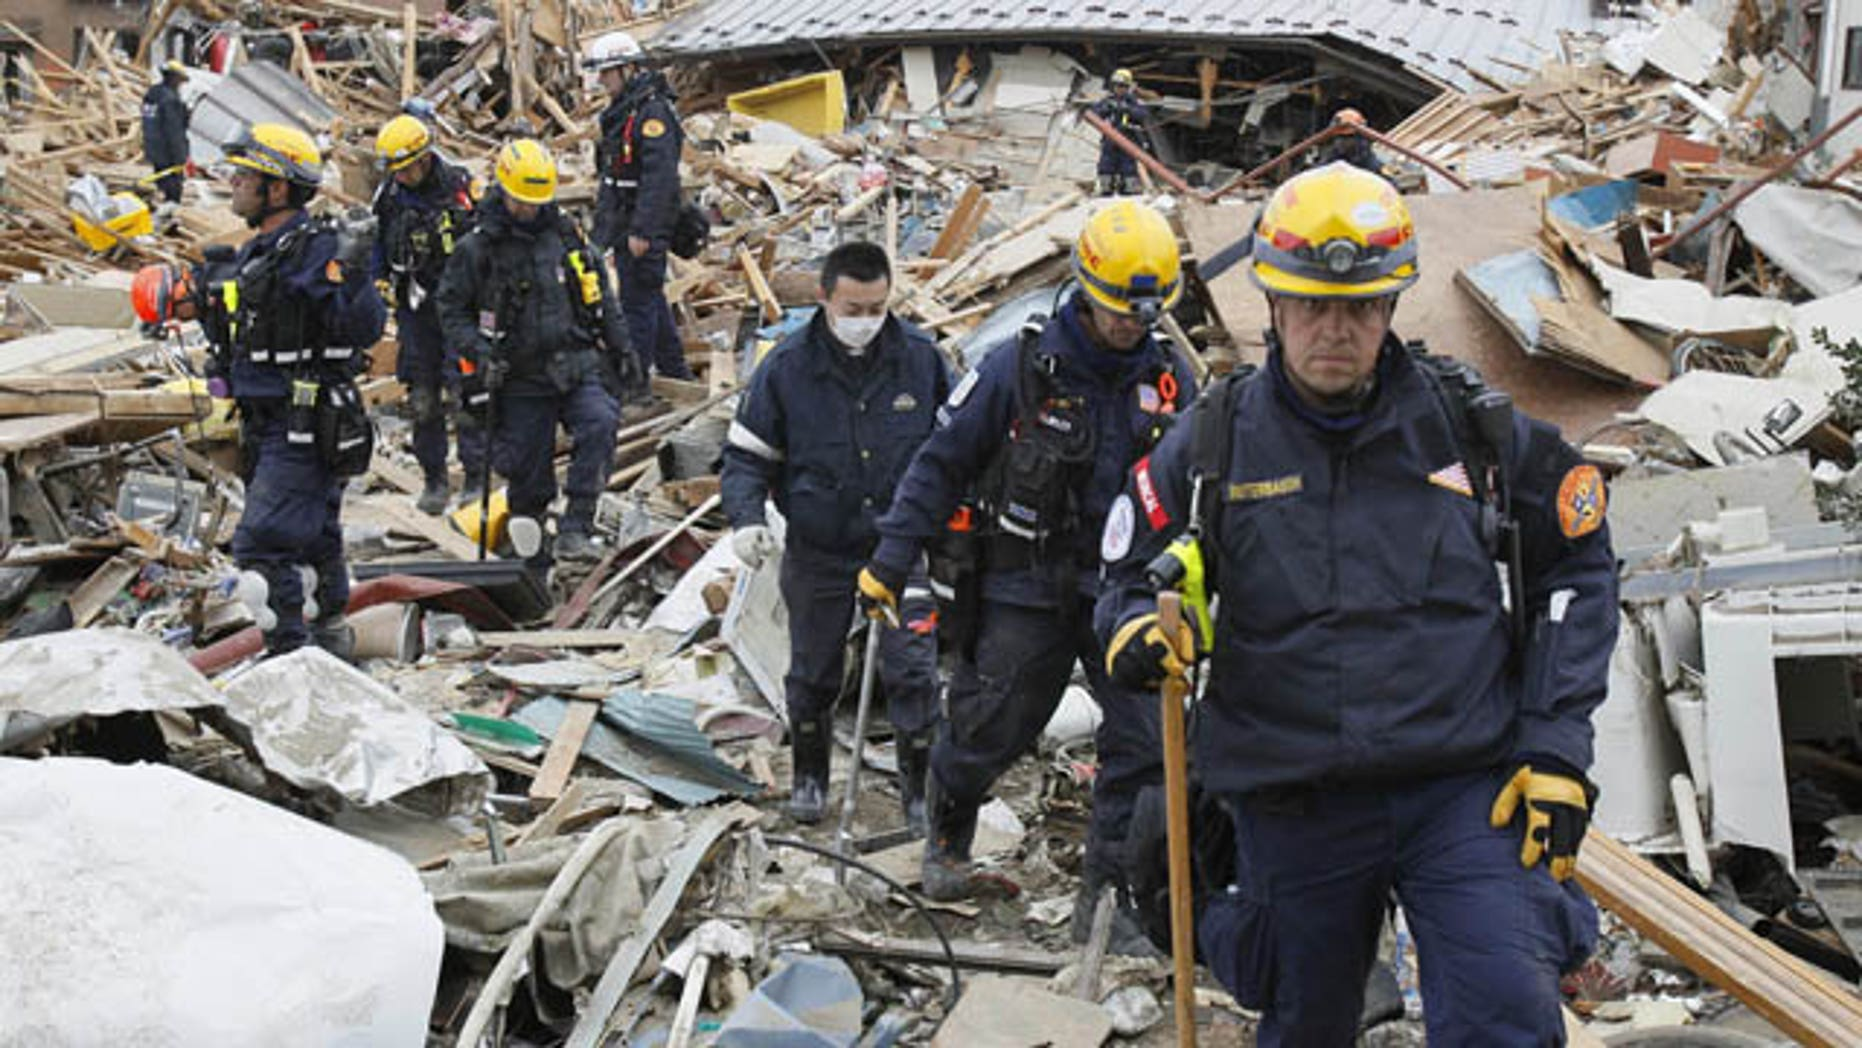 March 15: Members of a U.S. rescue team work in the rubble at the earthquake and tsunami devastated area in Ofunato, Iwate Prefecture, Japan, on Tuesday, four days after the devastation. (AP/Kyodo News)